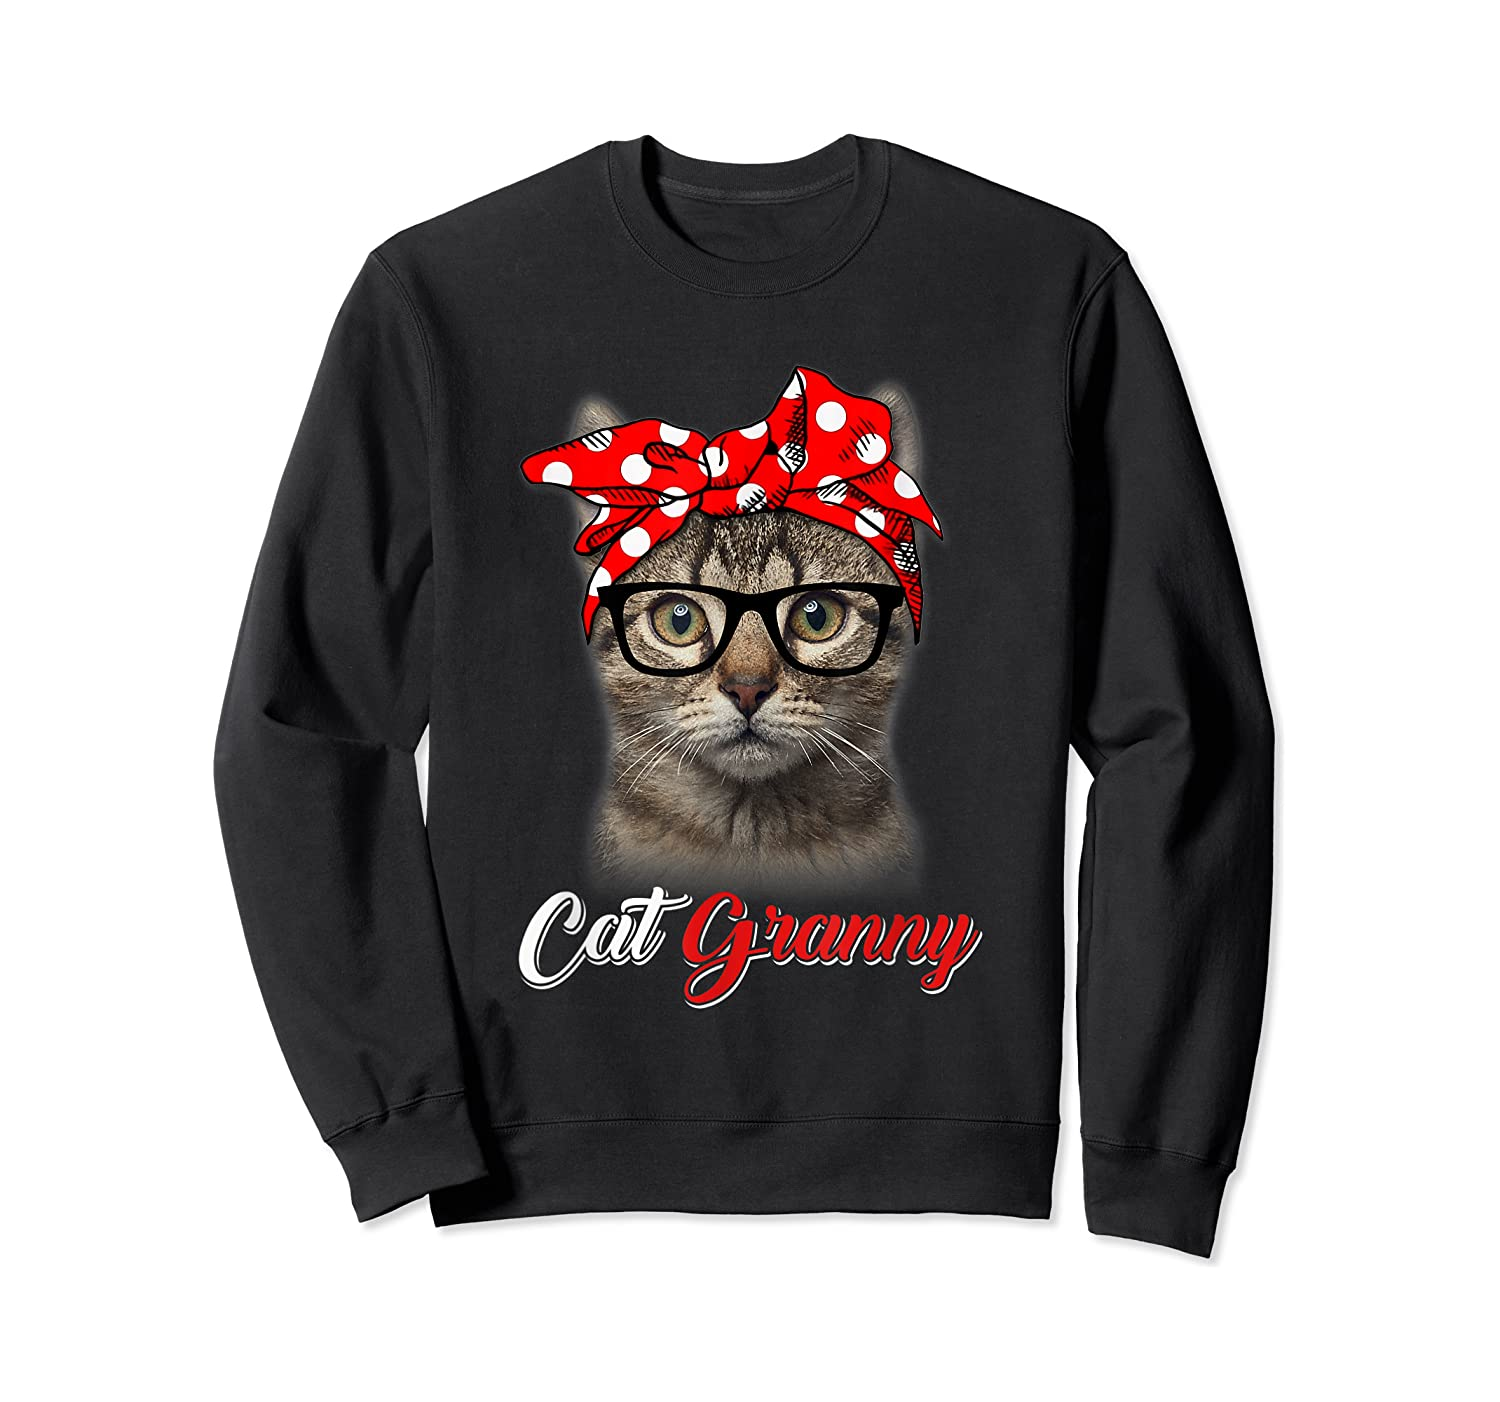 Funny Cat Granny Shirt For Cat Lovers-mothers Day Gift Crewneck Sweater